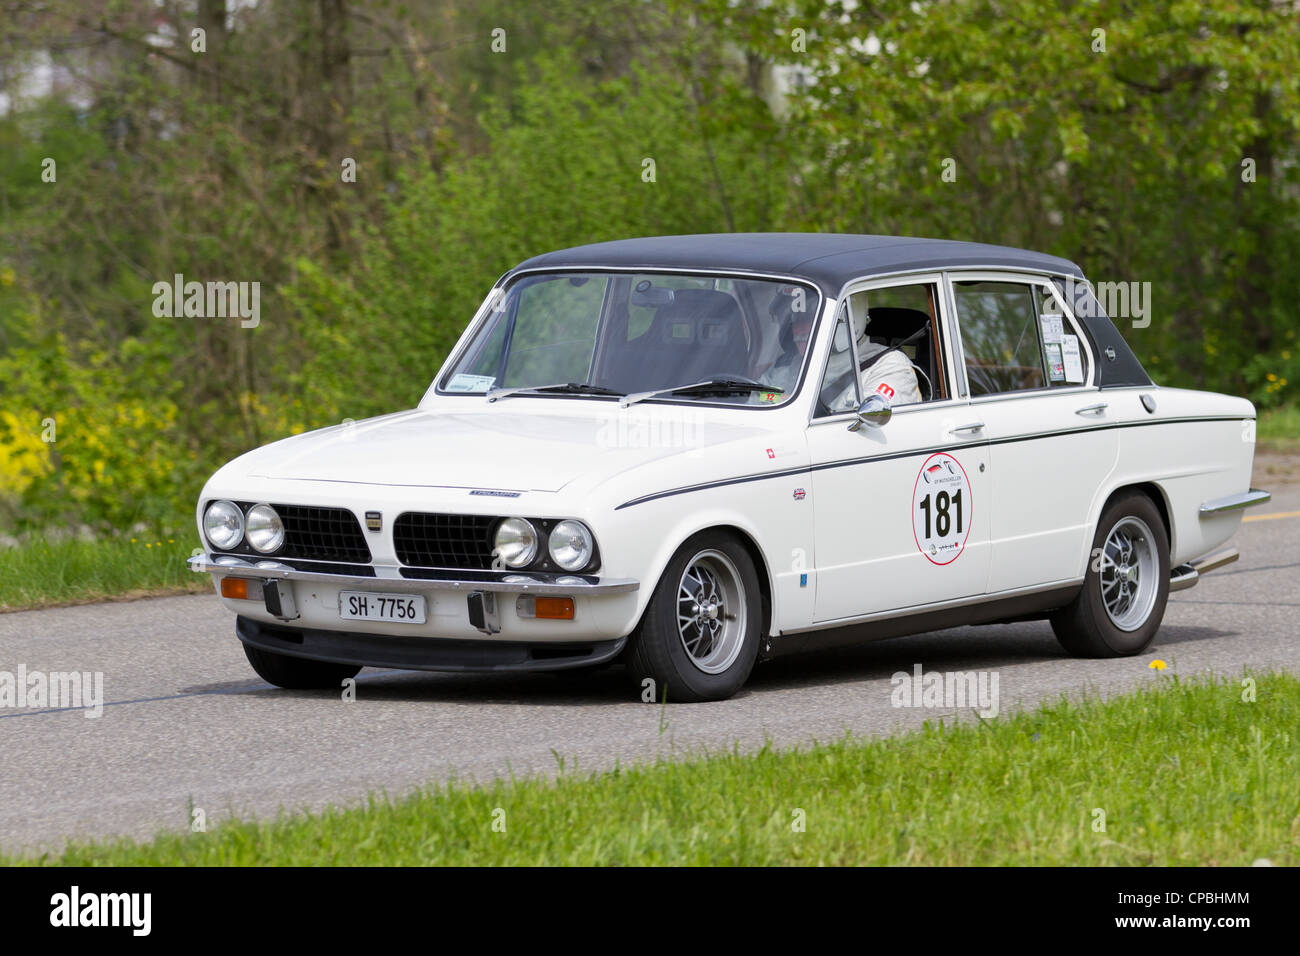 Vintage race touring car Triumph Dolomite Sprint from 1973 at Grand ...